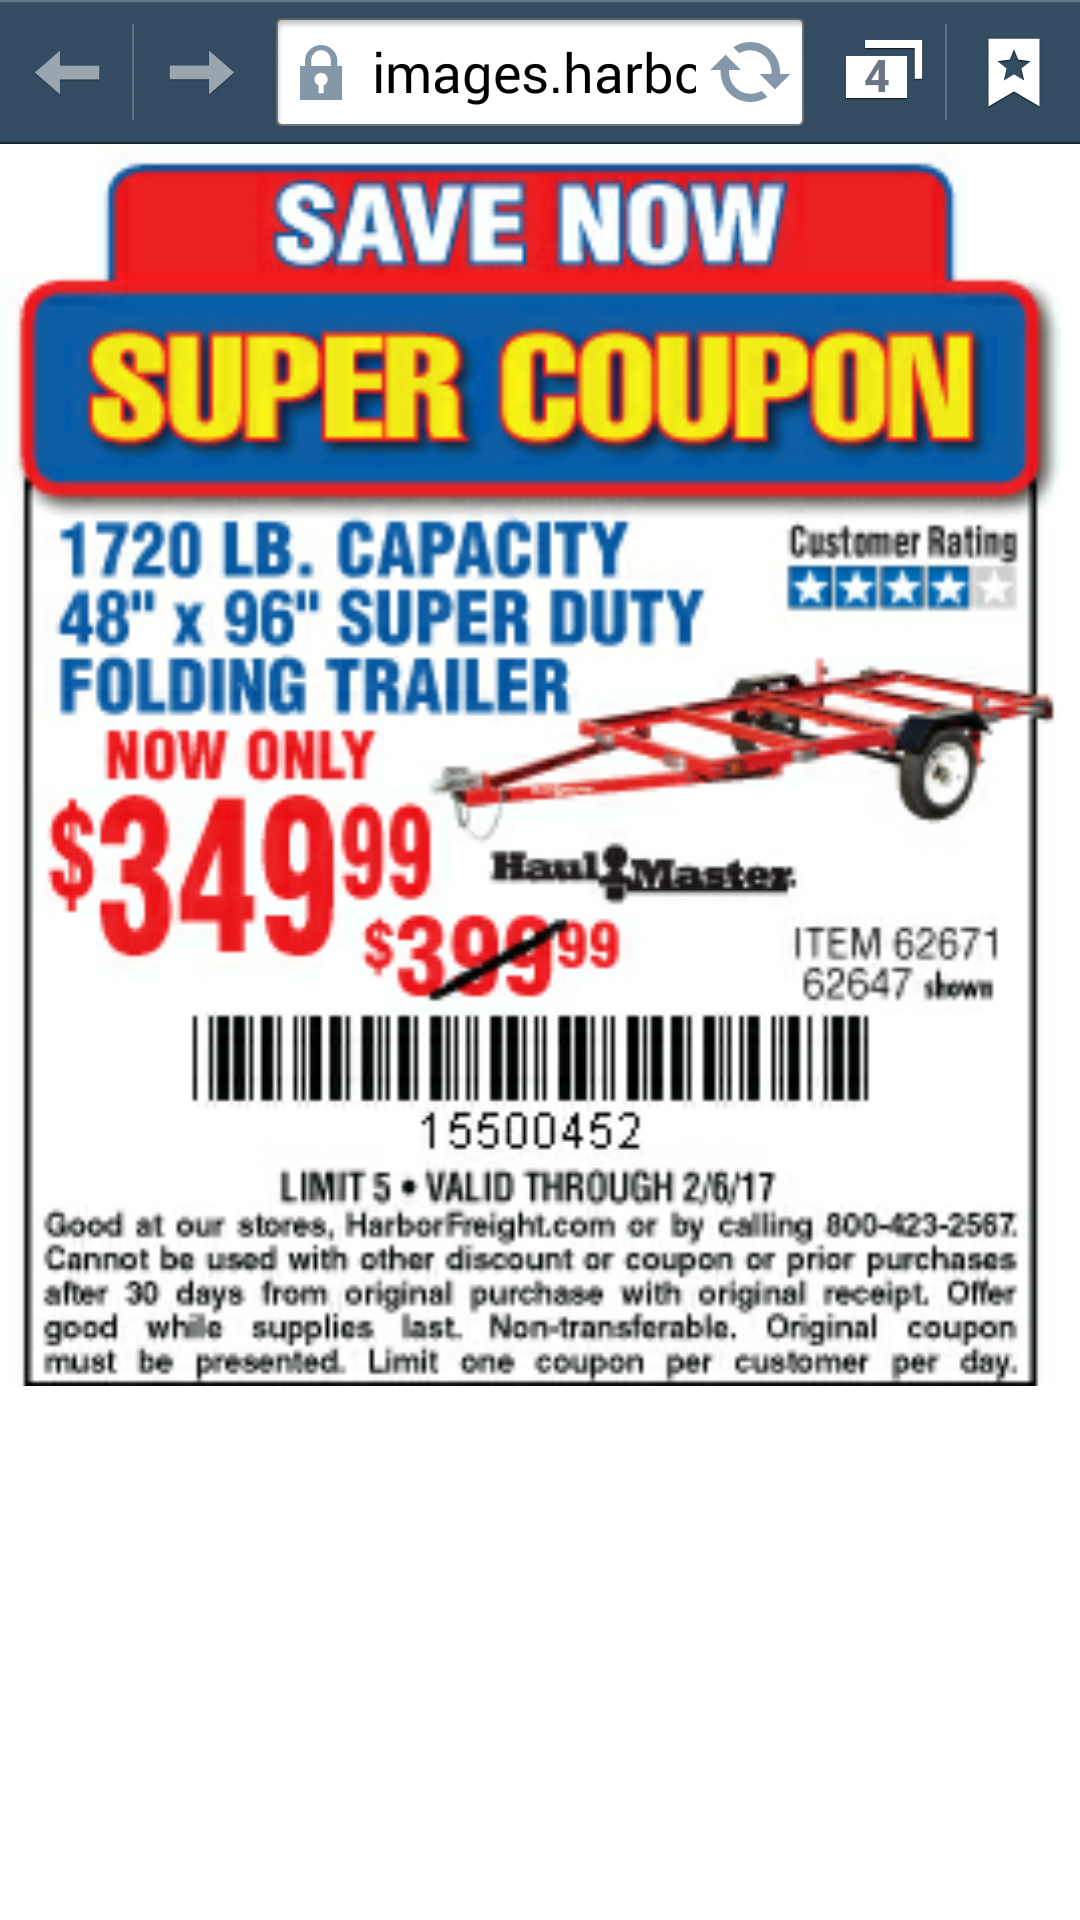 Super 8 coupon code